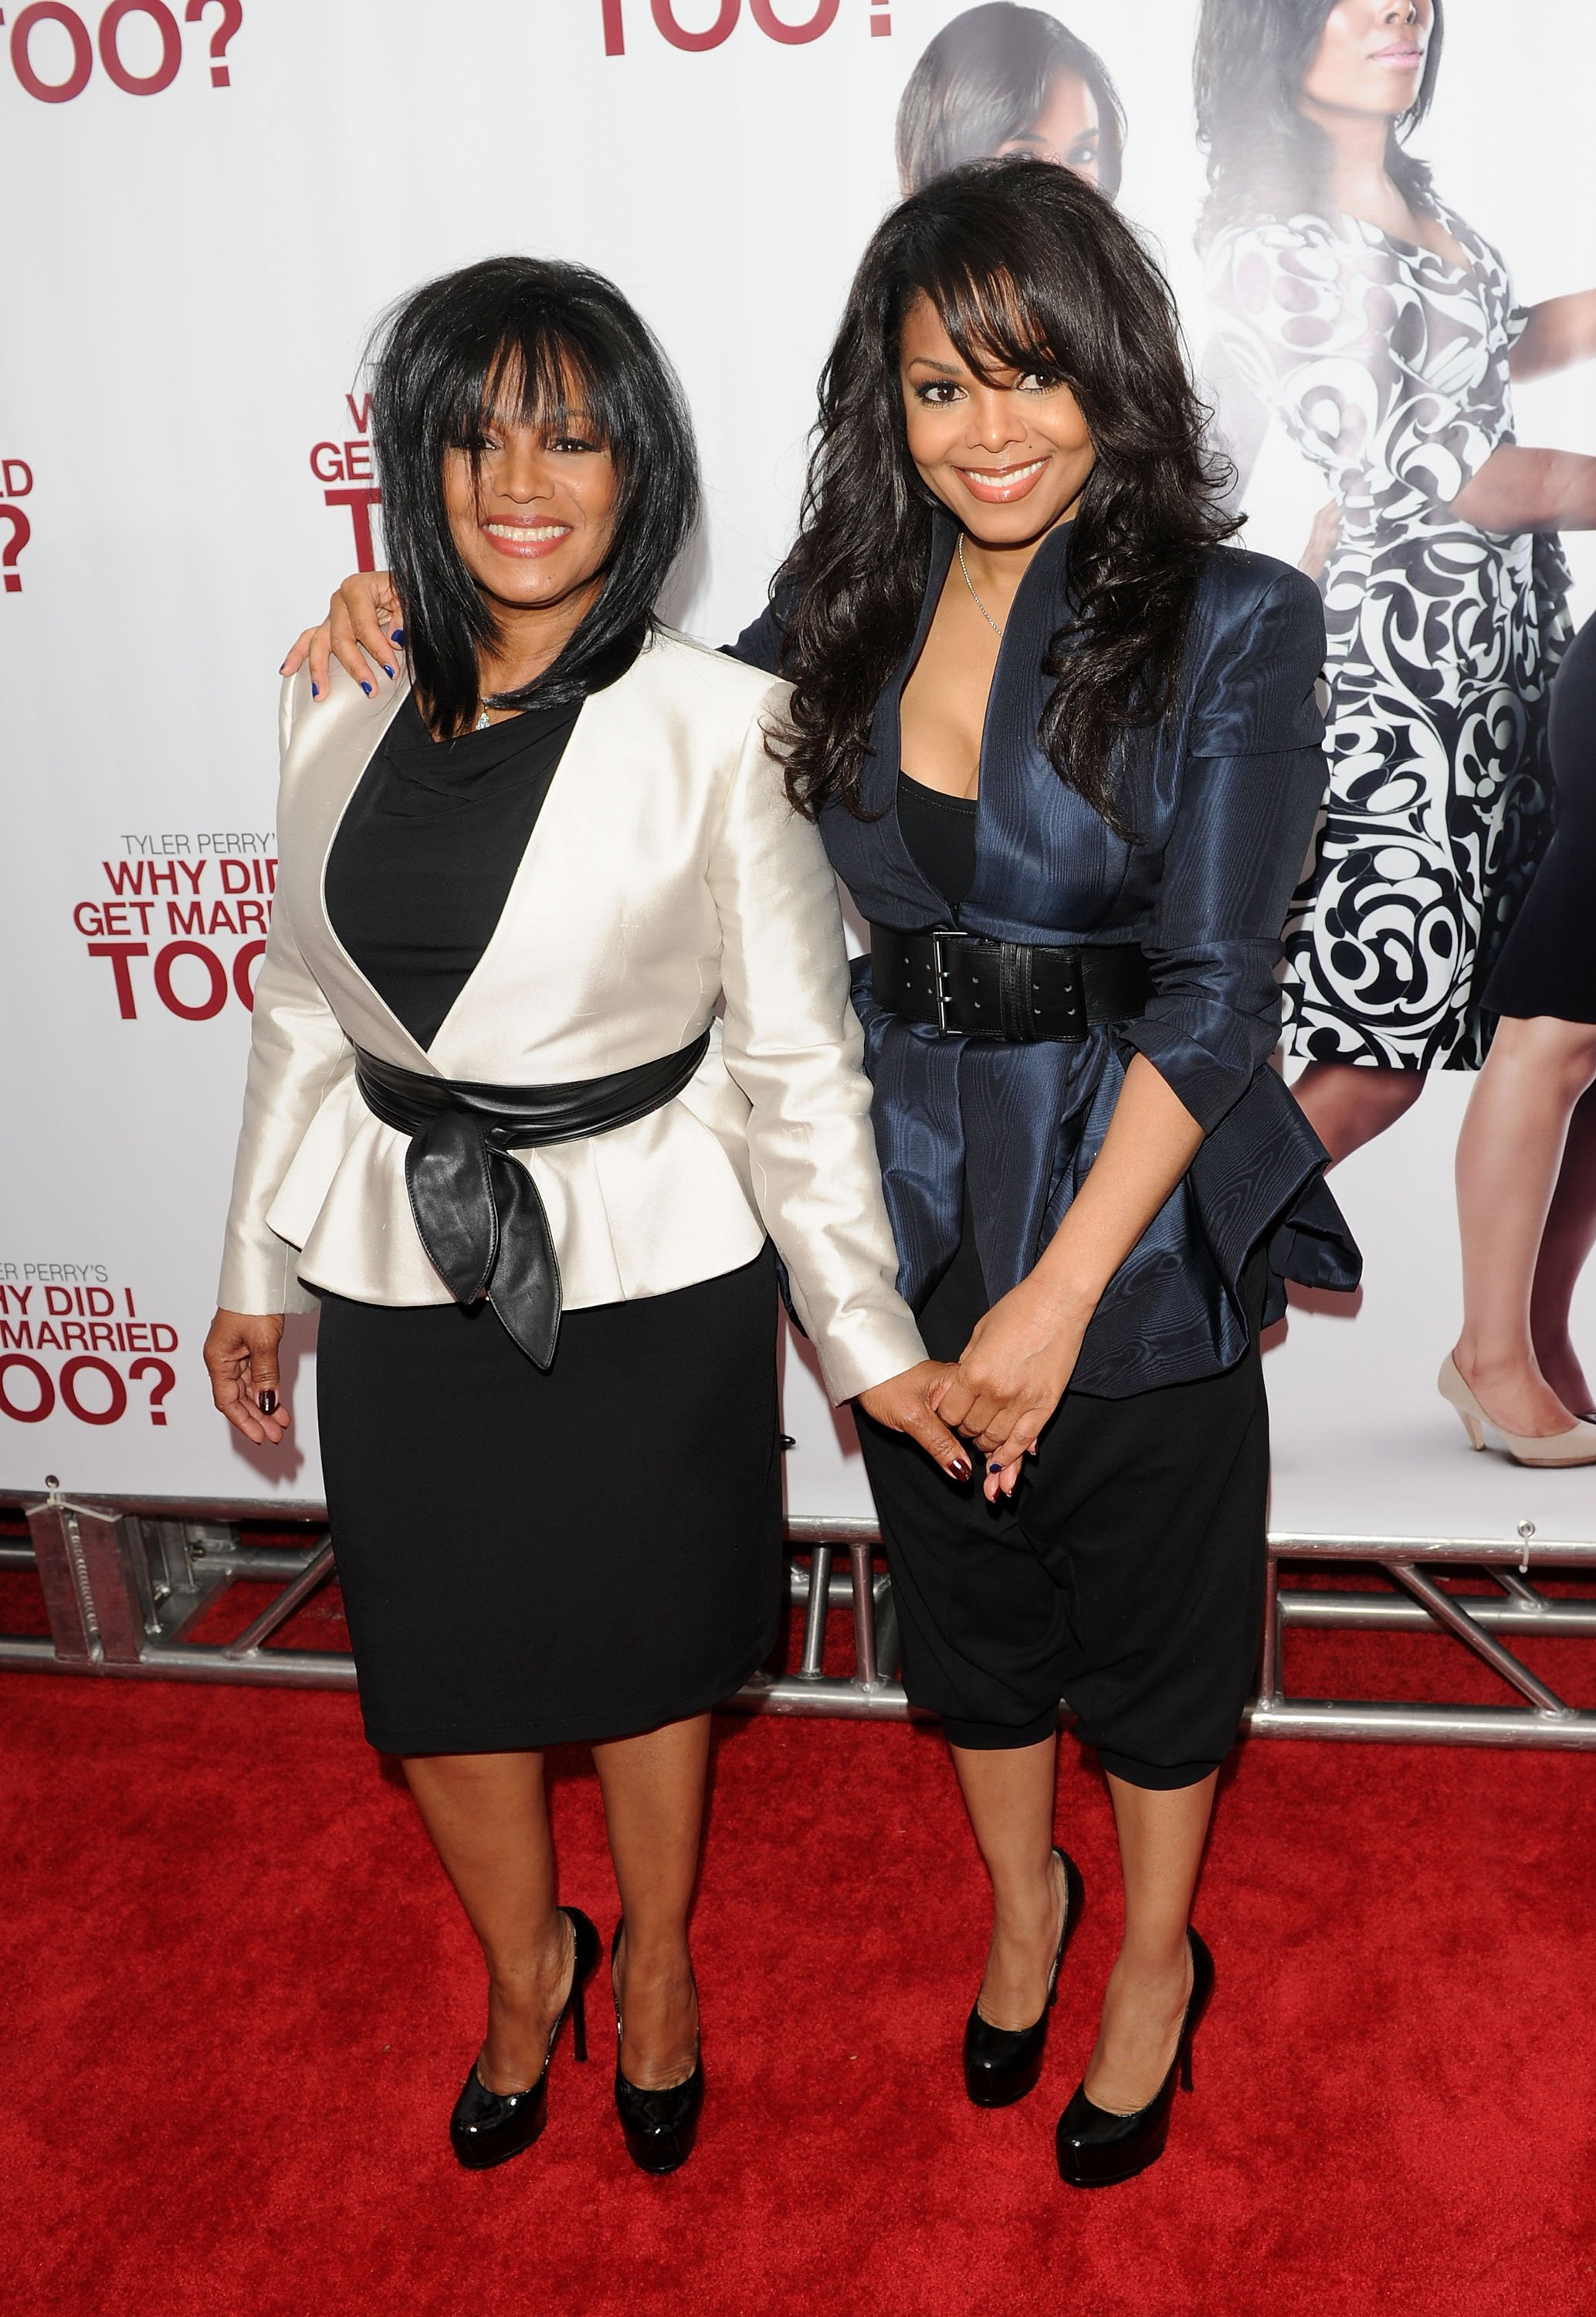 """Rebbie Jackson and Janet Jackson attend a screening of """"Why Did I Get Married Too?"""" at the School of Visual Arts Theater on March 22, 2010 in New York City 